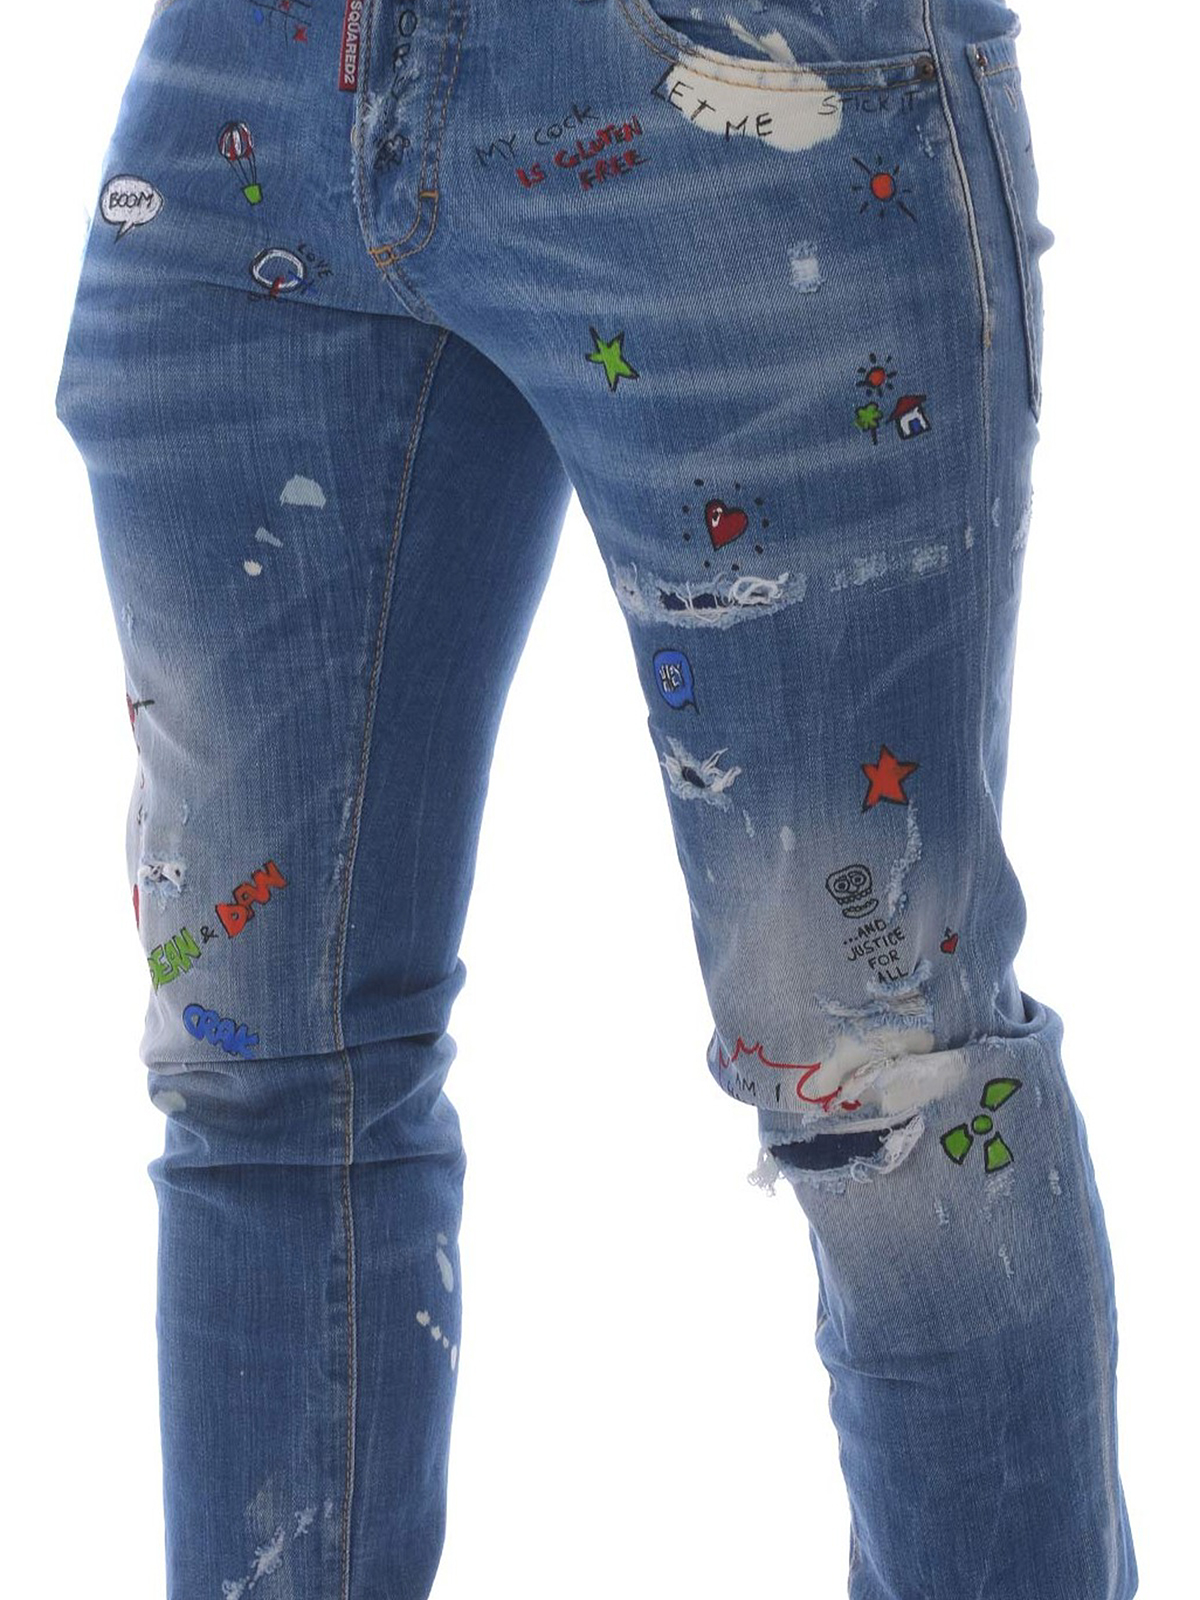 b372cd6e289a72 Dsquared2 - Cotton patterned jeans - straight leg jeans ...